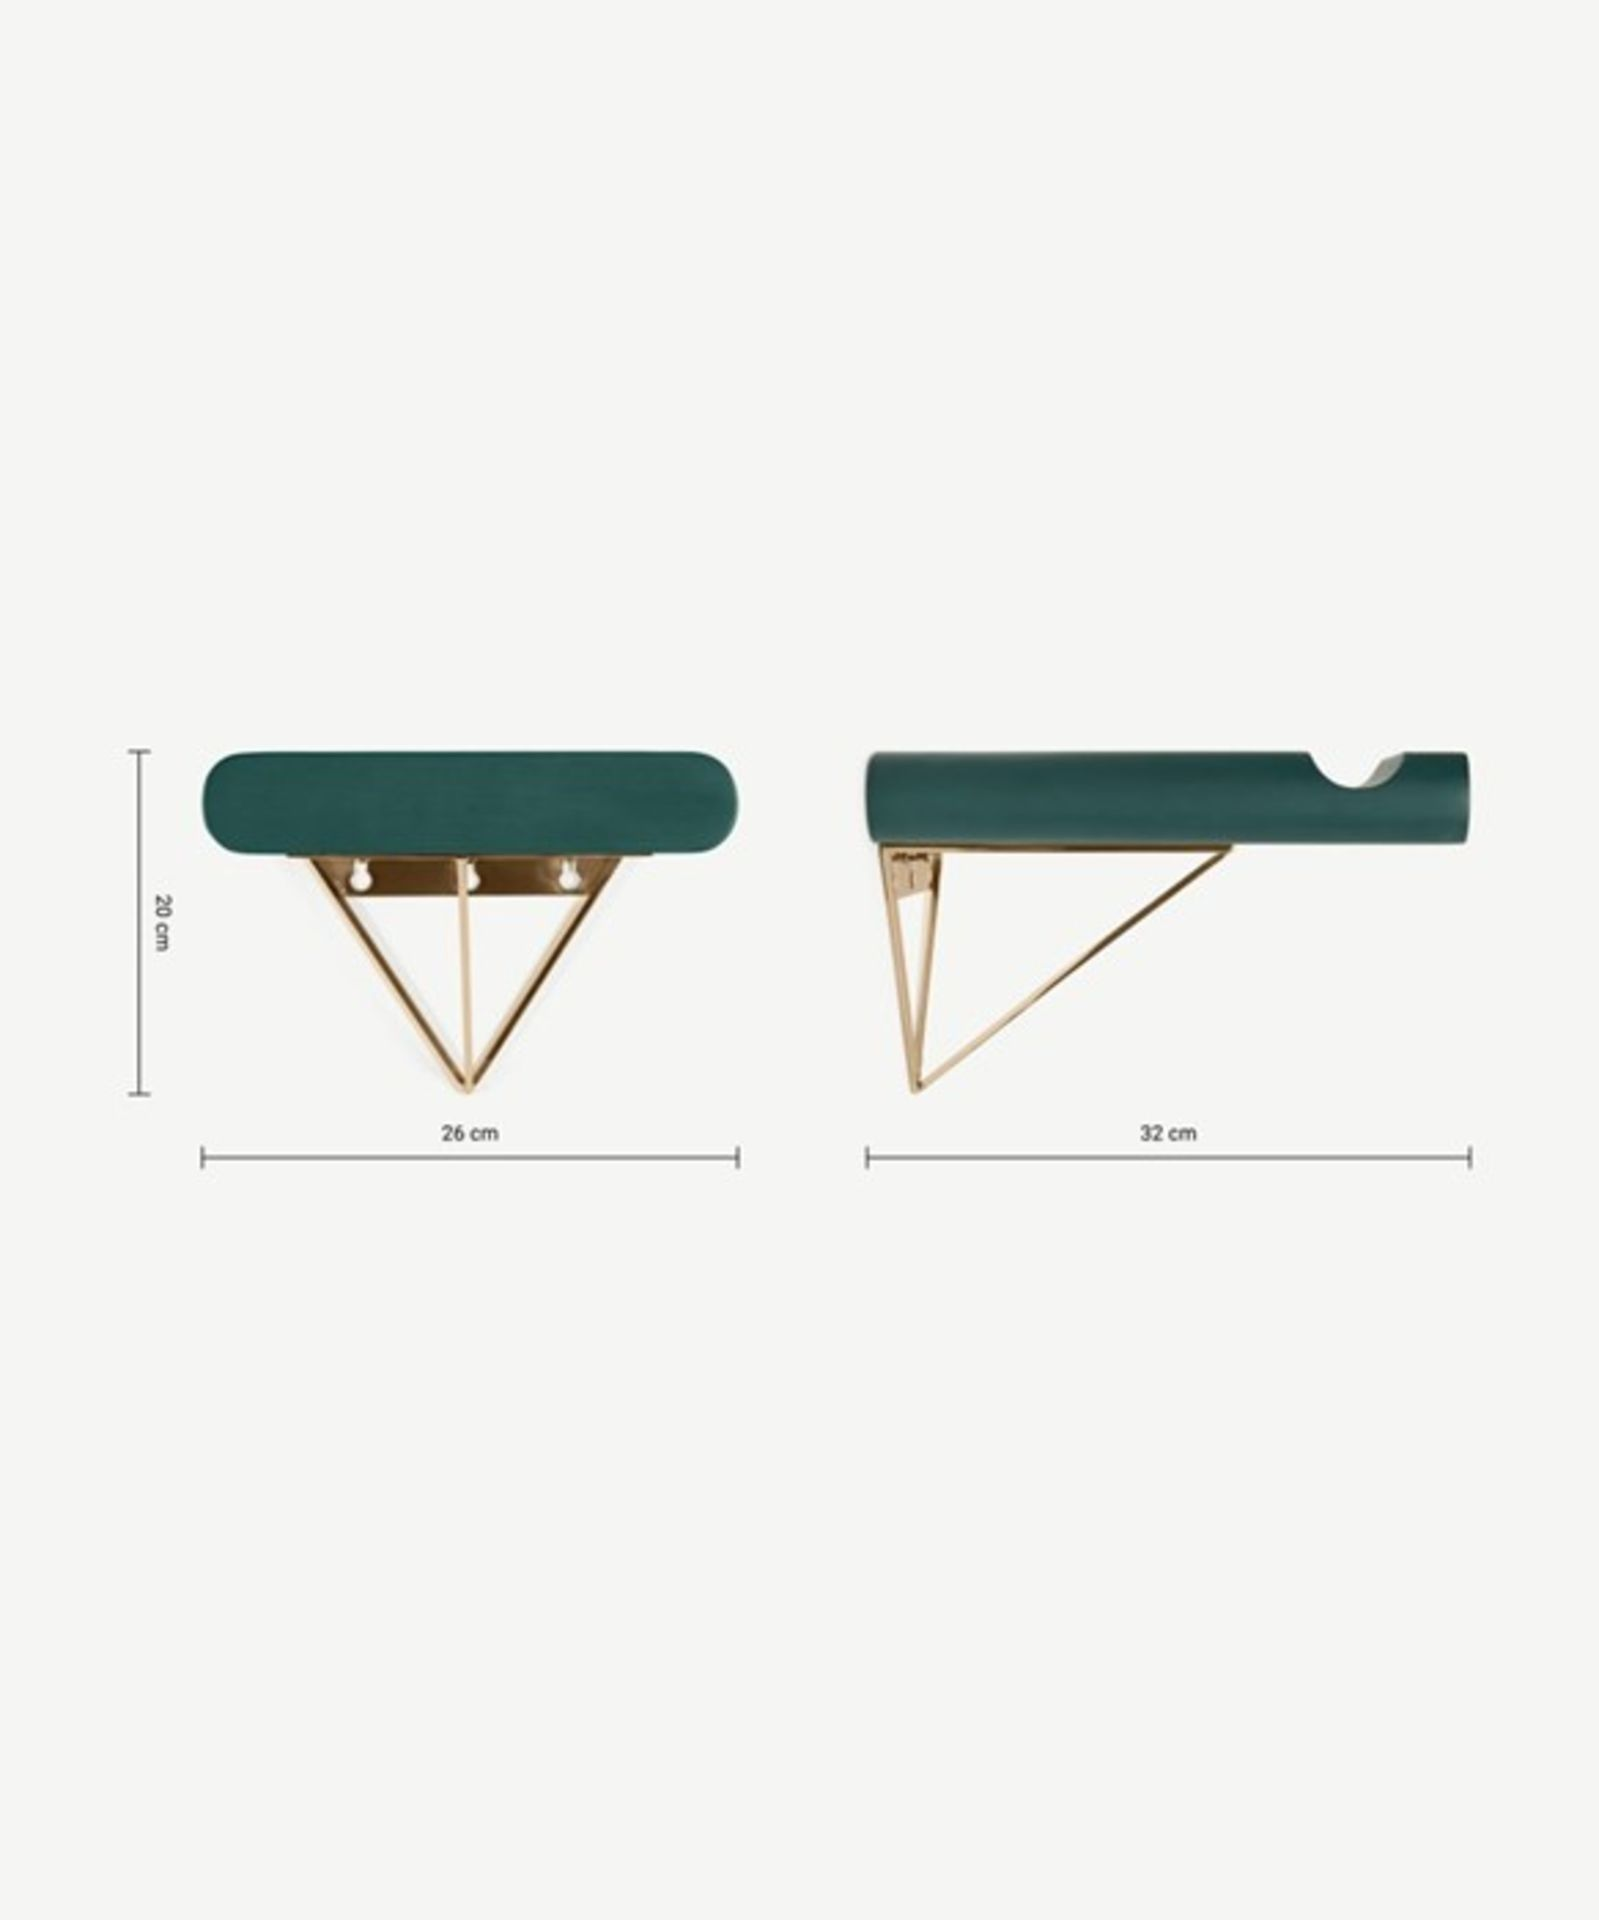 | 1x | Made.com Dayde Bike Stand Teal RRP £45 | SKU MAD-ACCDAY005GRE-UK | RAW | RRP £45 | TOTAL